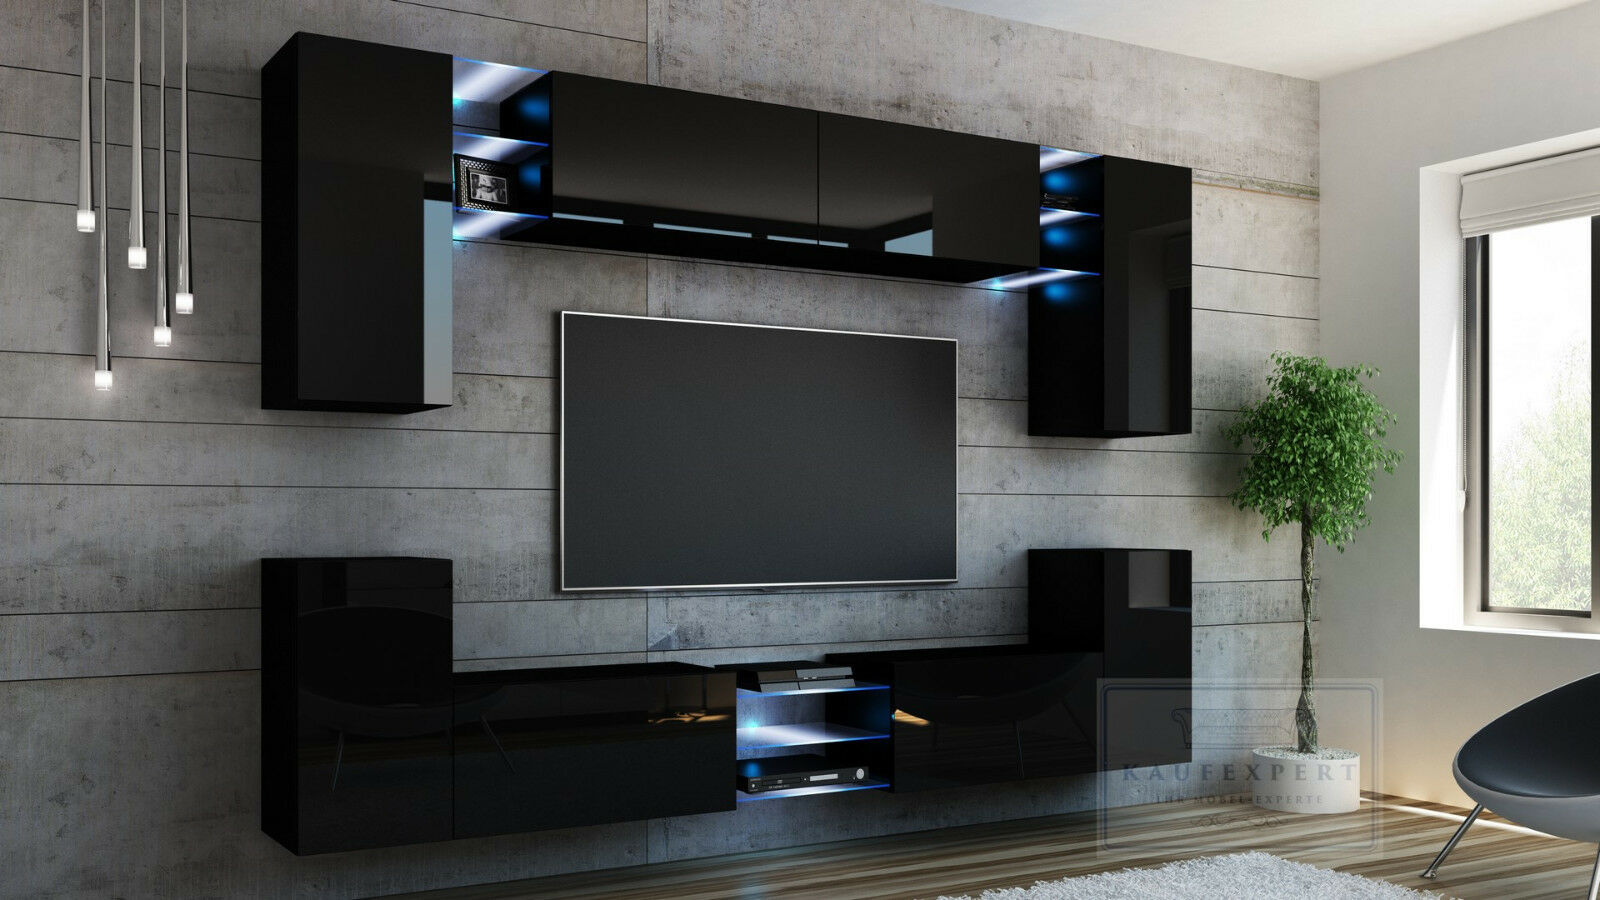 wohnwand galaxy schwarz hochglanz beleuchtung h ngewand anbauwand led mediawand eur 649 00. Black Bedroom Furniture Sets. Home Design Ideas